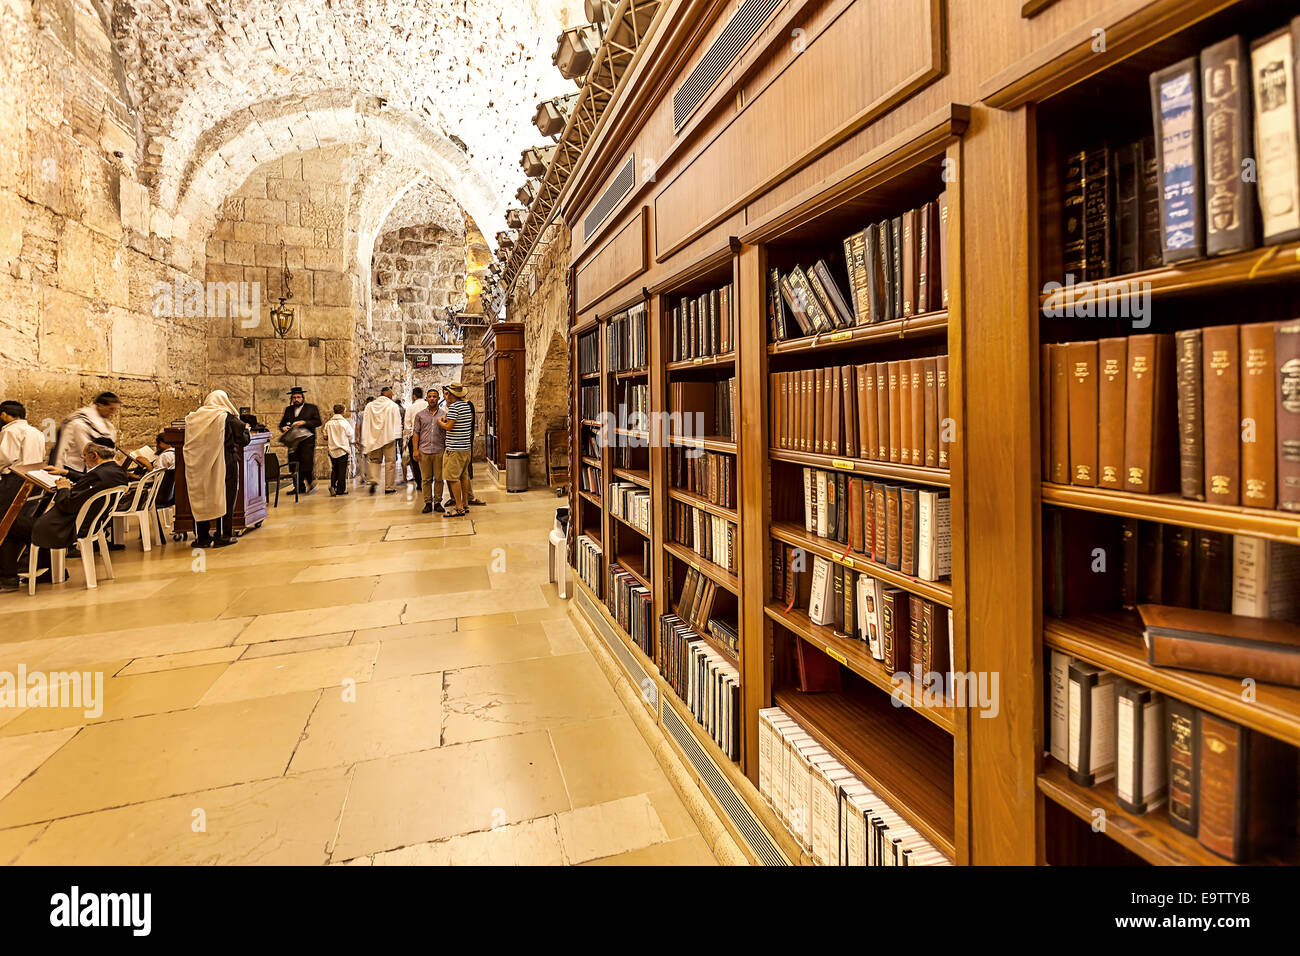 Cave synagogue in Jerusalem, Israel. - Stock Image